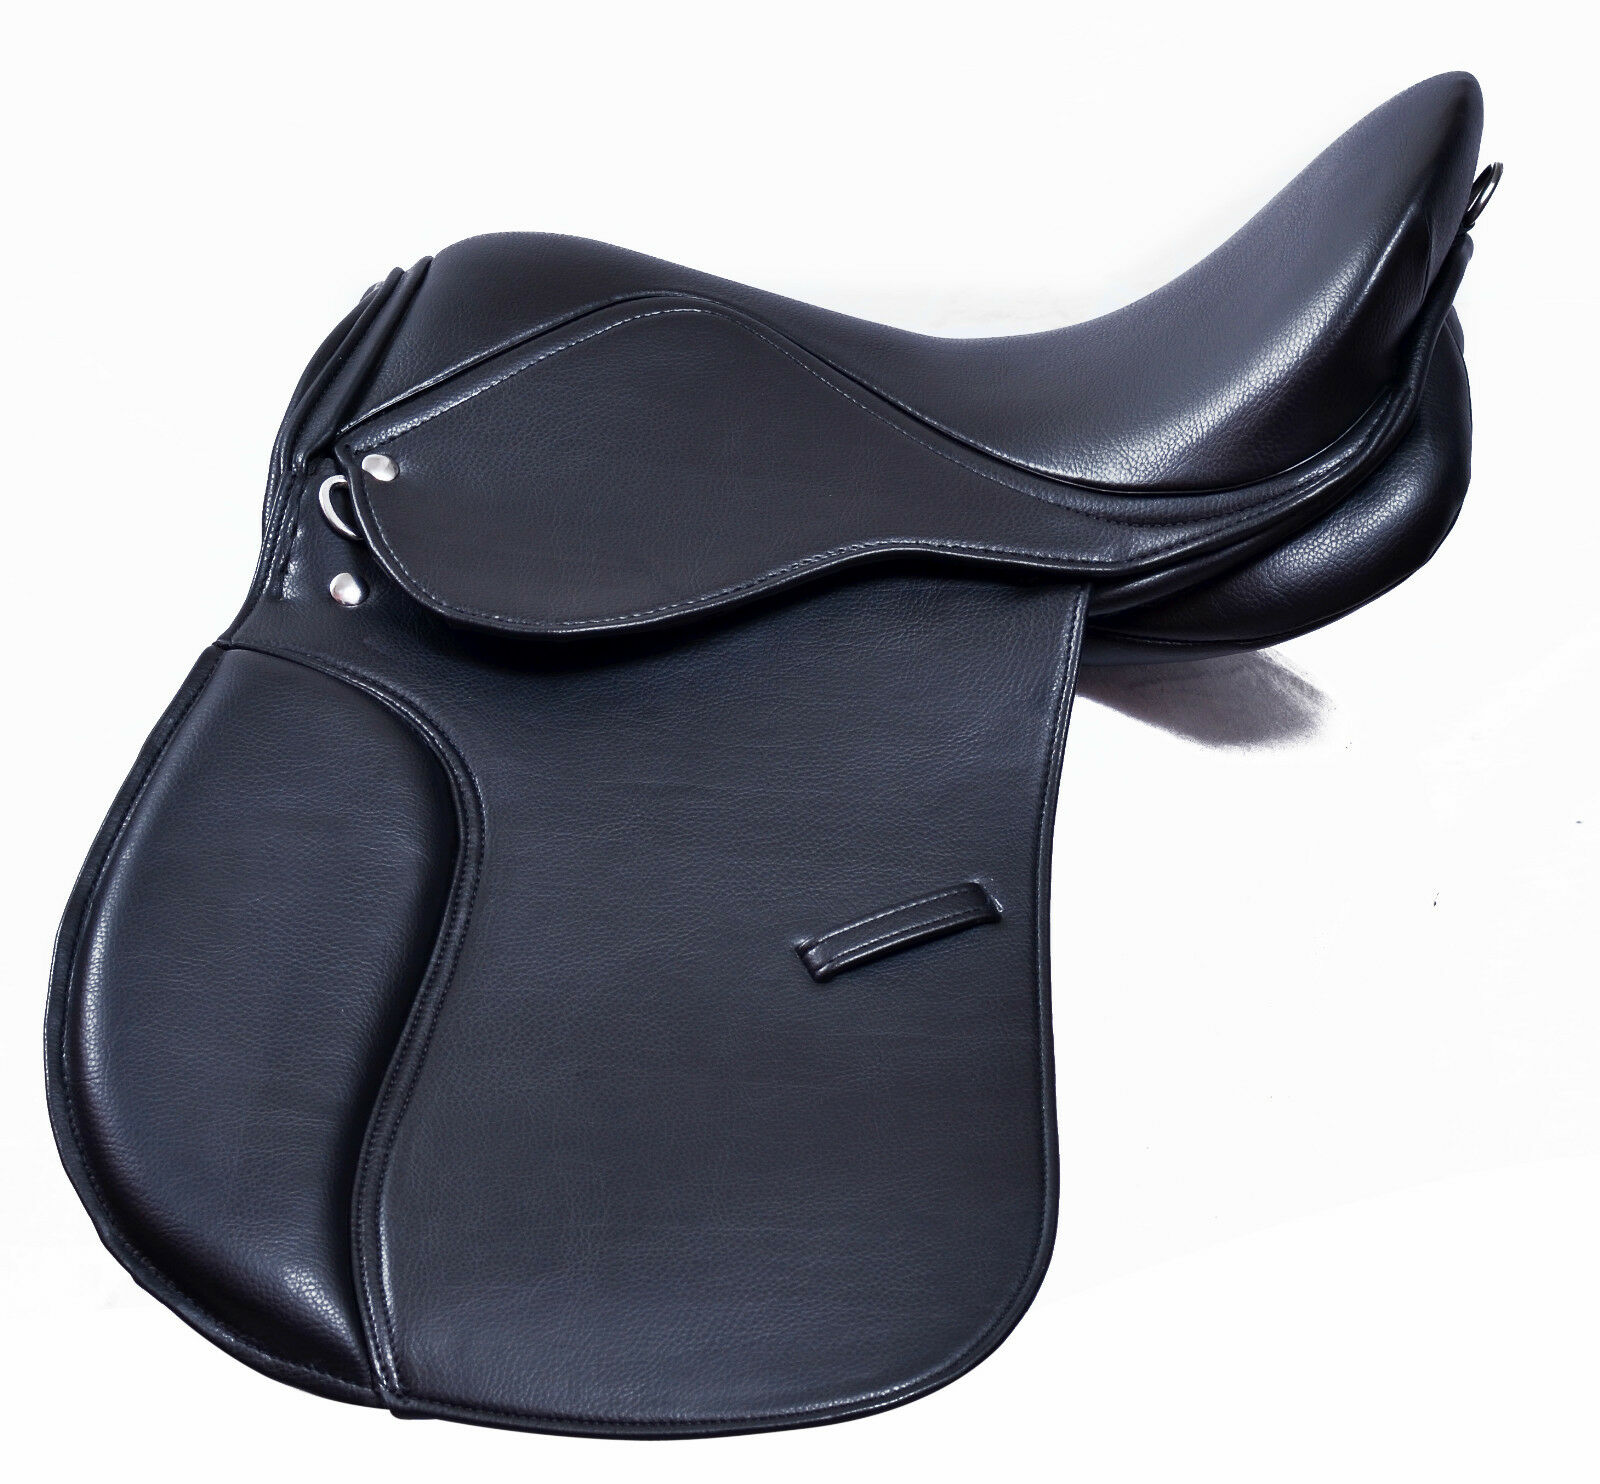 Synthetic General Purpose Purpose Purpose Halflinger Saddle Wide fit 16, 17 & 18 Premium Quality 0176e6